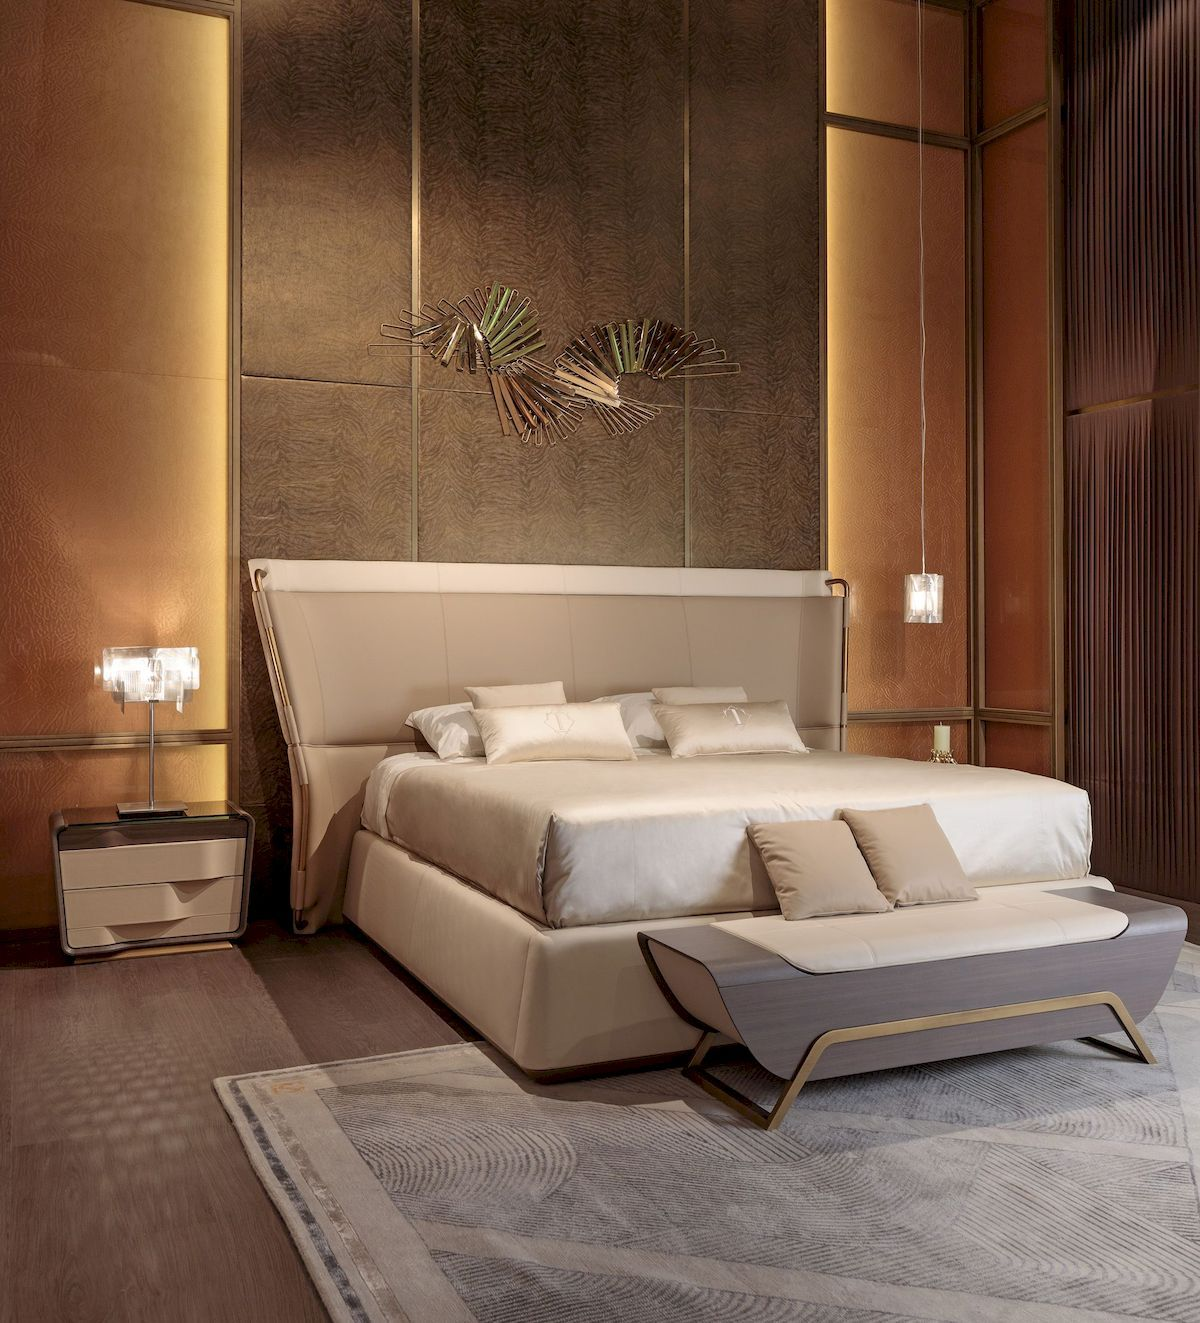 Luxury Bedroom Furniture Stores: Stunning Bedroom Lighting Ideas